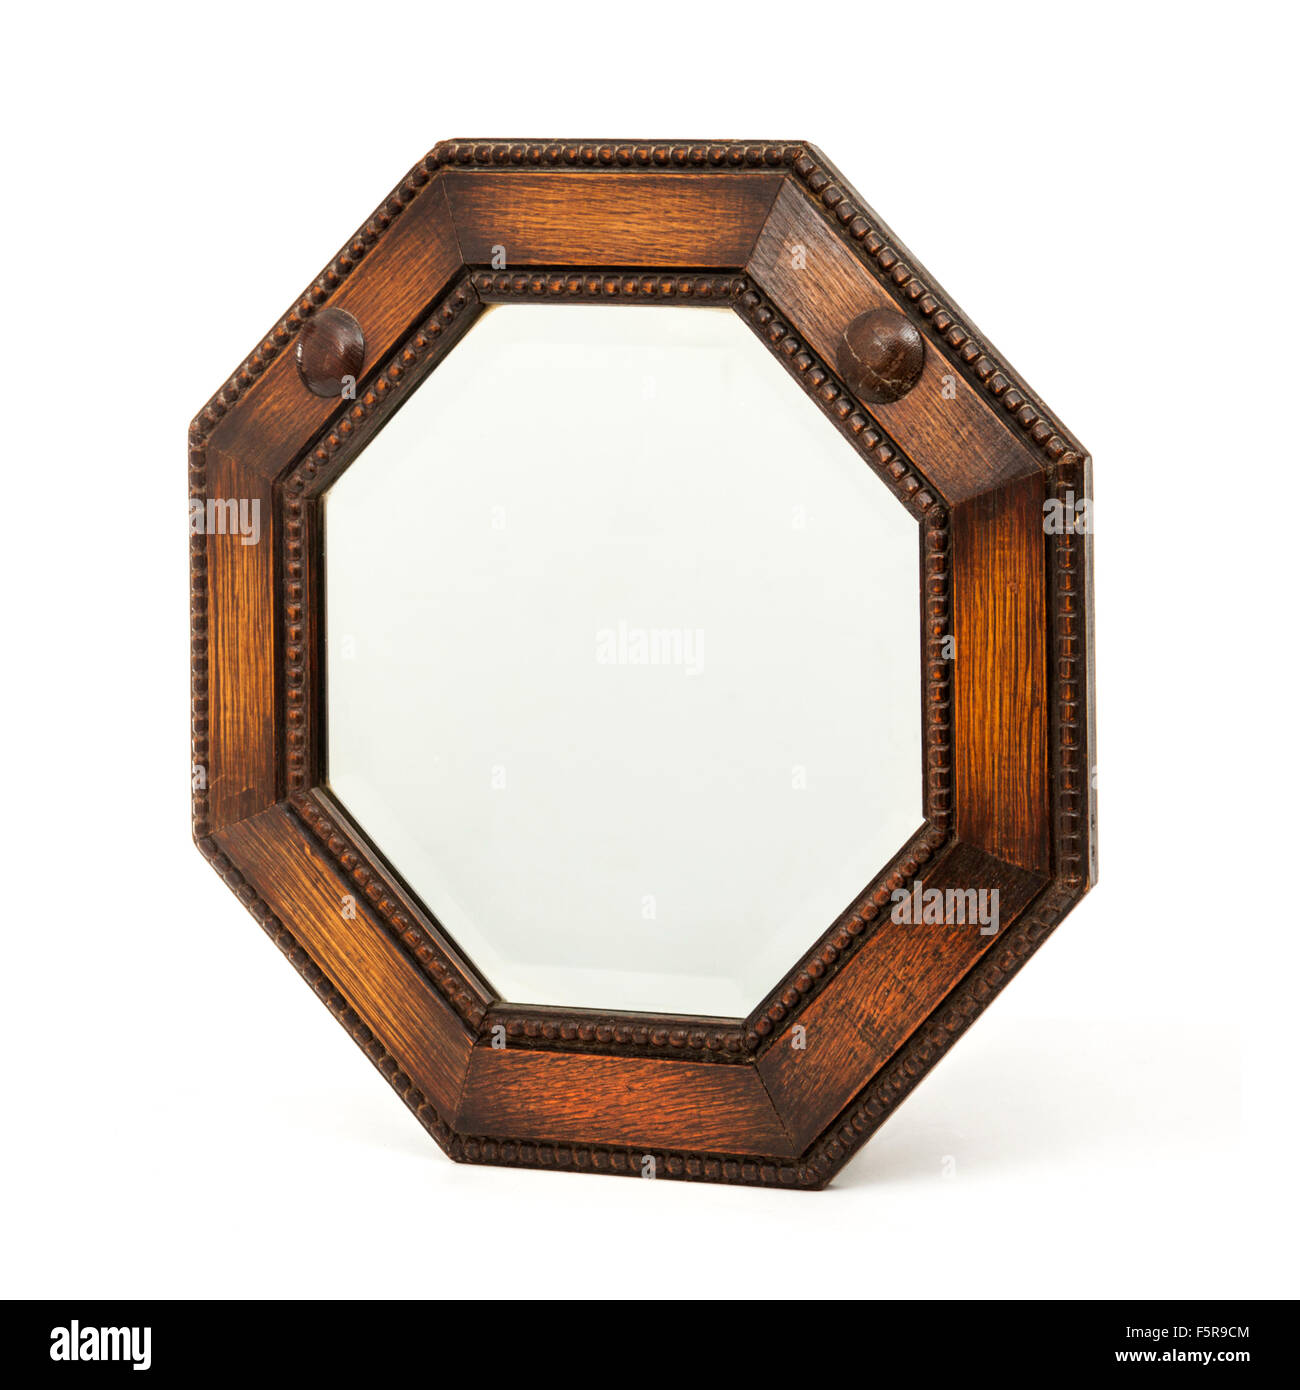 Antique octagonal wooden mirror with bevelled glass - Stock Image